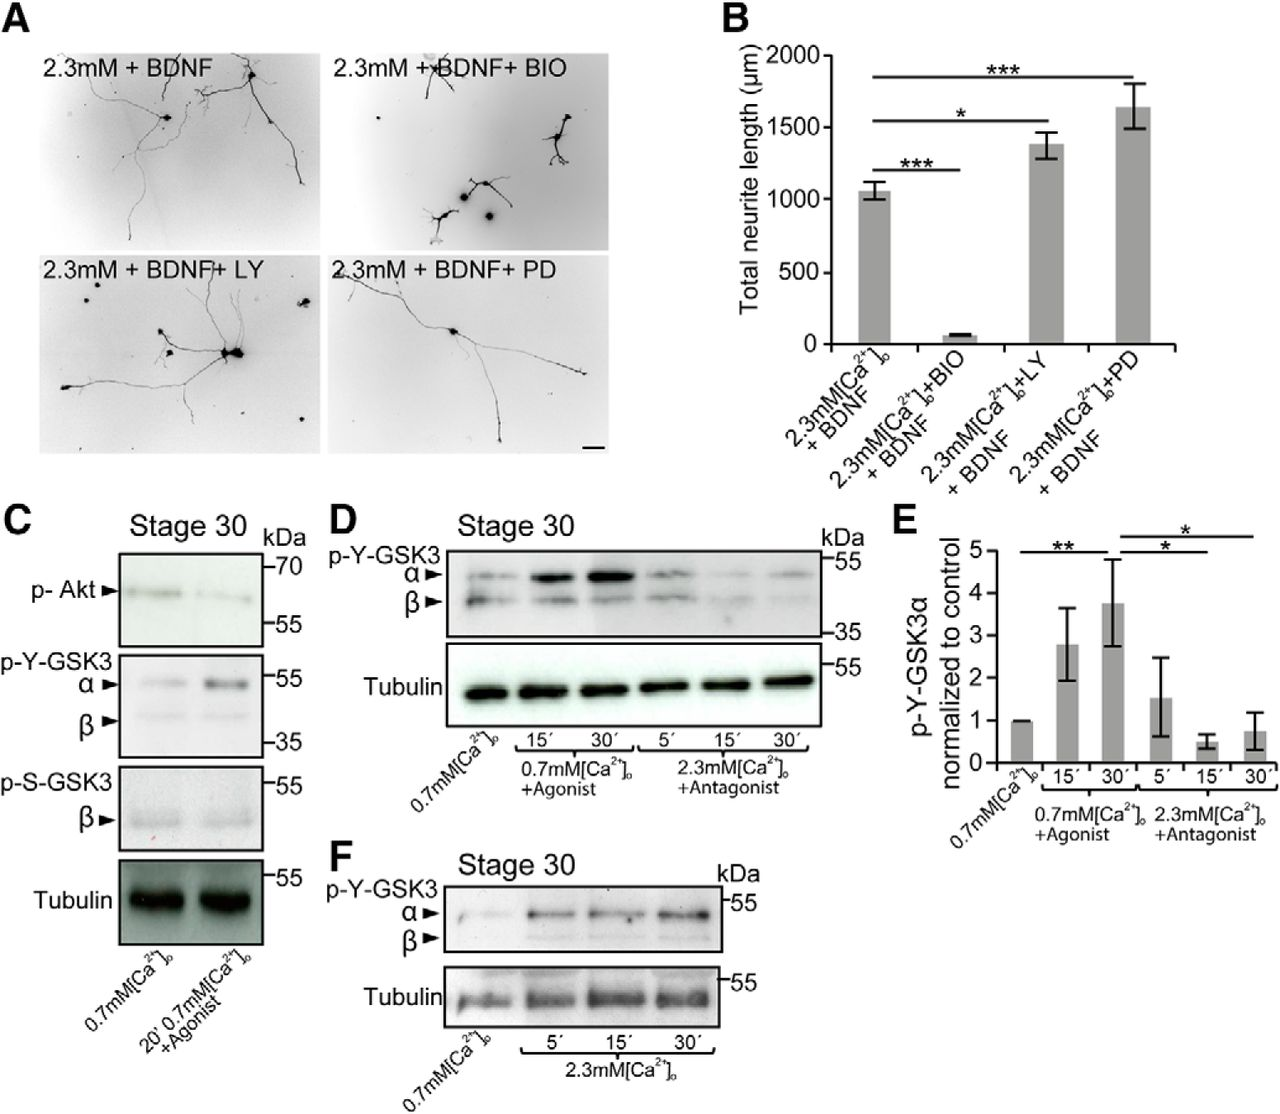 Sensory Axon Growth Requires Spatiotemporal Integration of